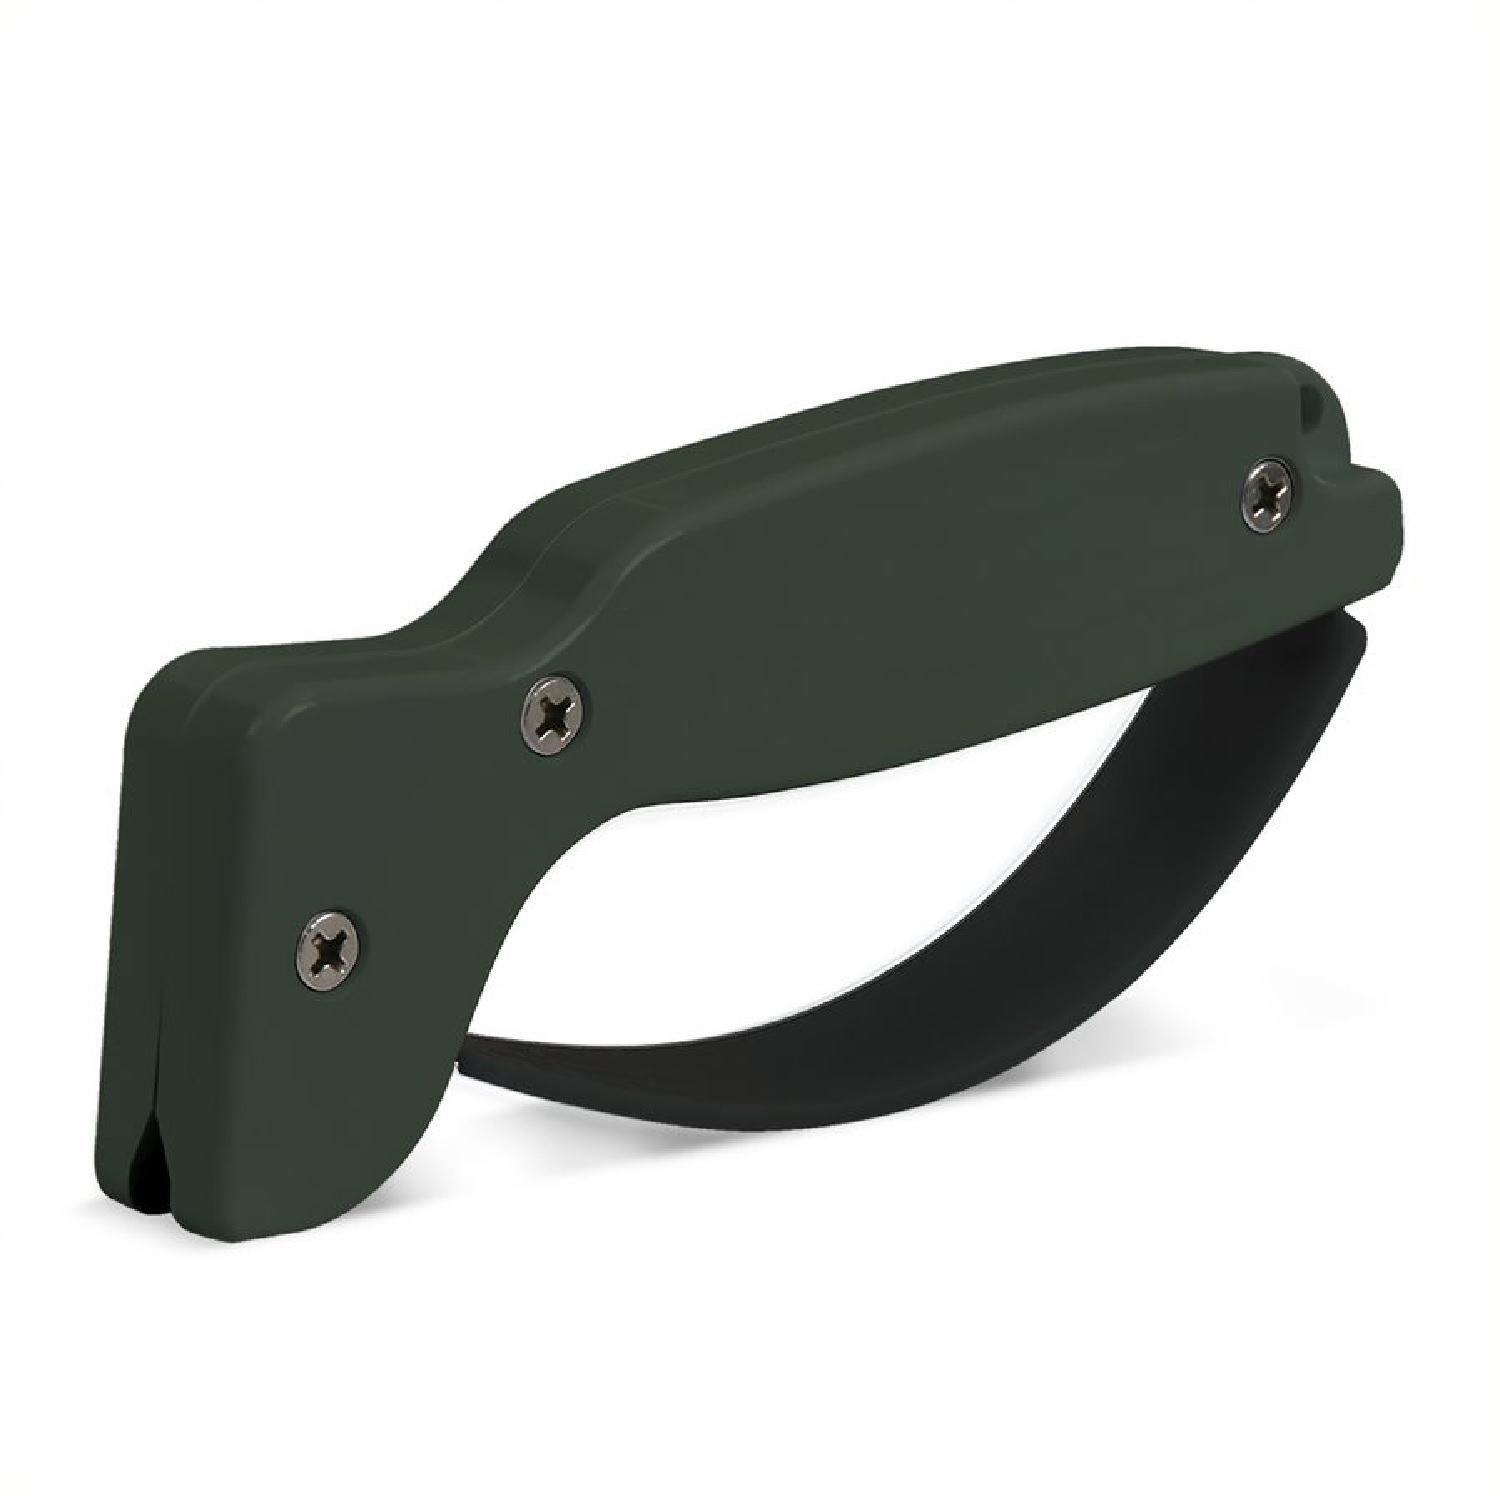 AccuSharp Knife and Tool Sharpener 008C Olive Drab Green